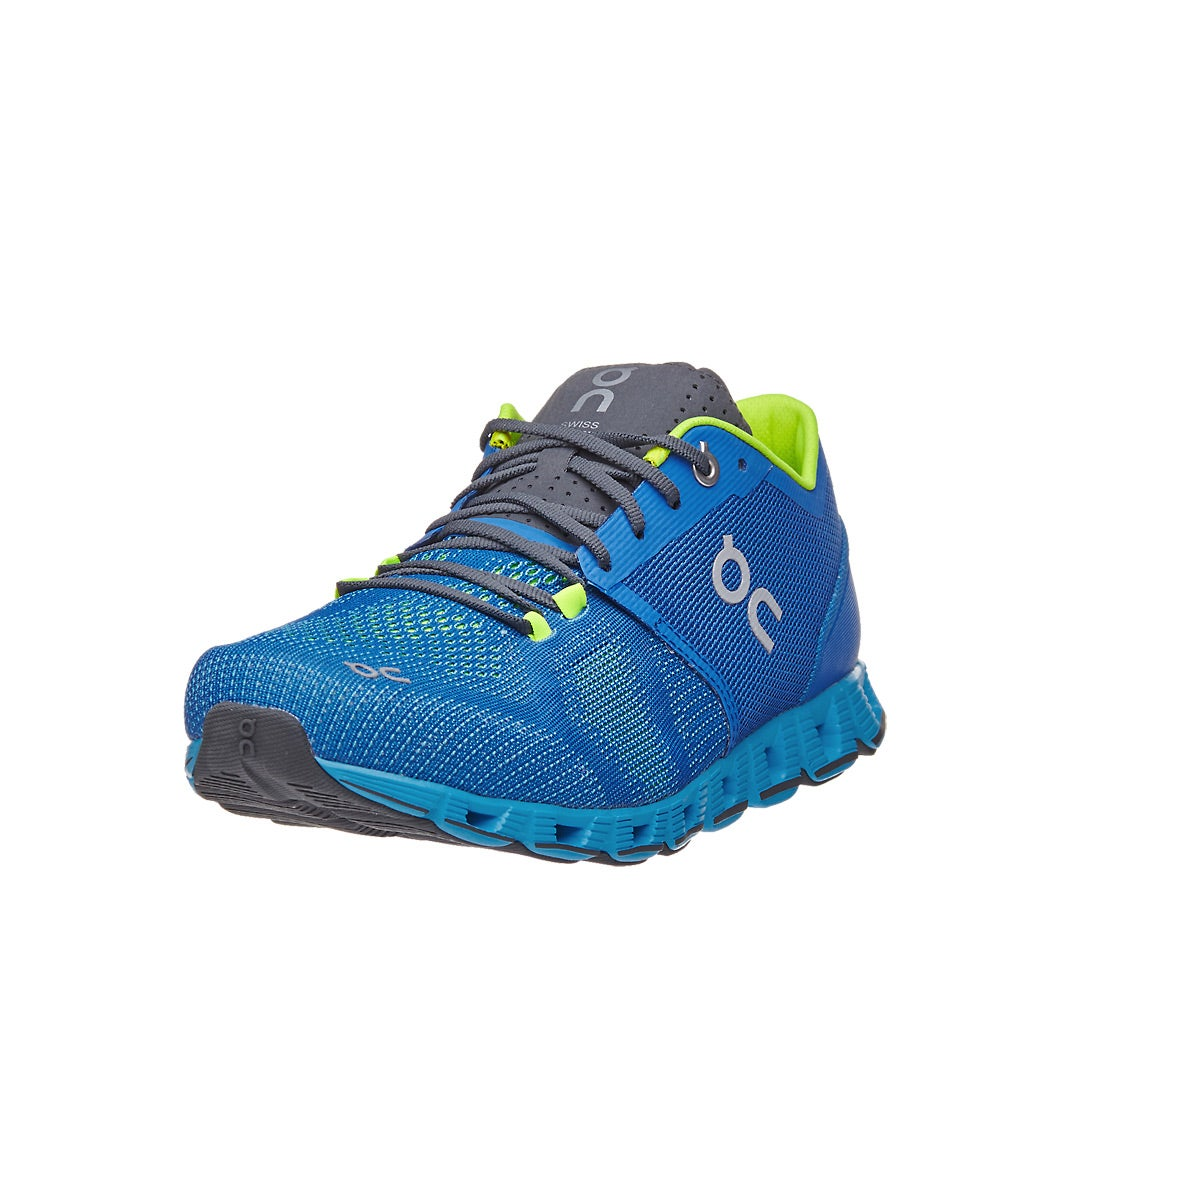 Cloudflow Running Shoe Runnign Warehouse Womens